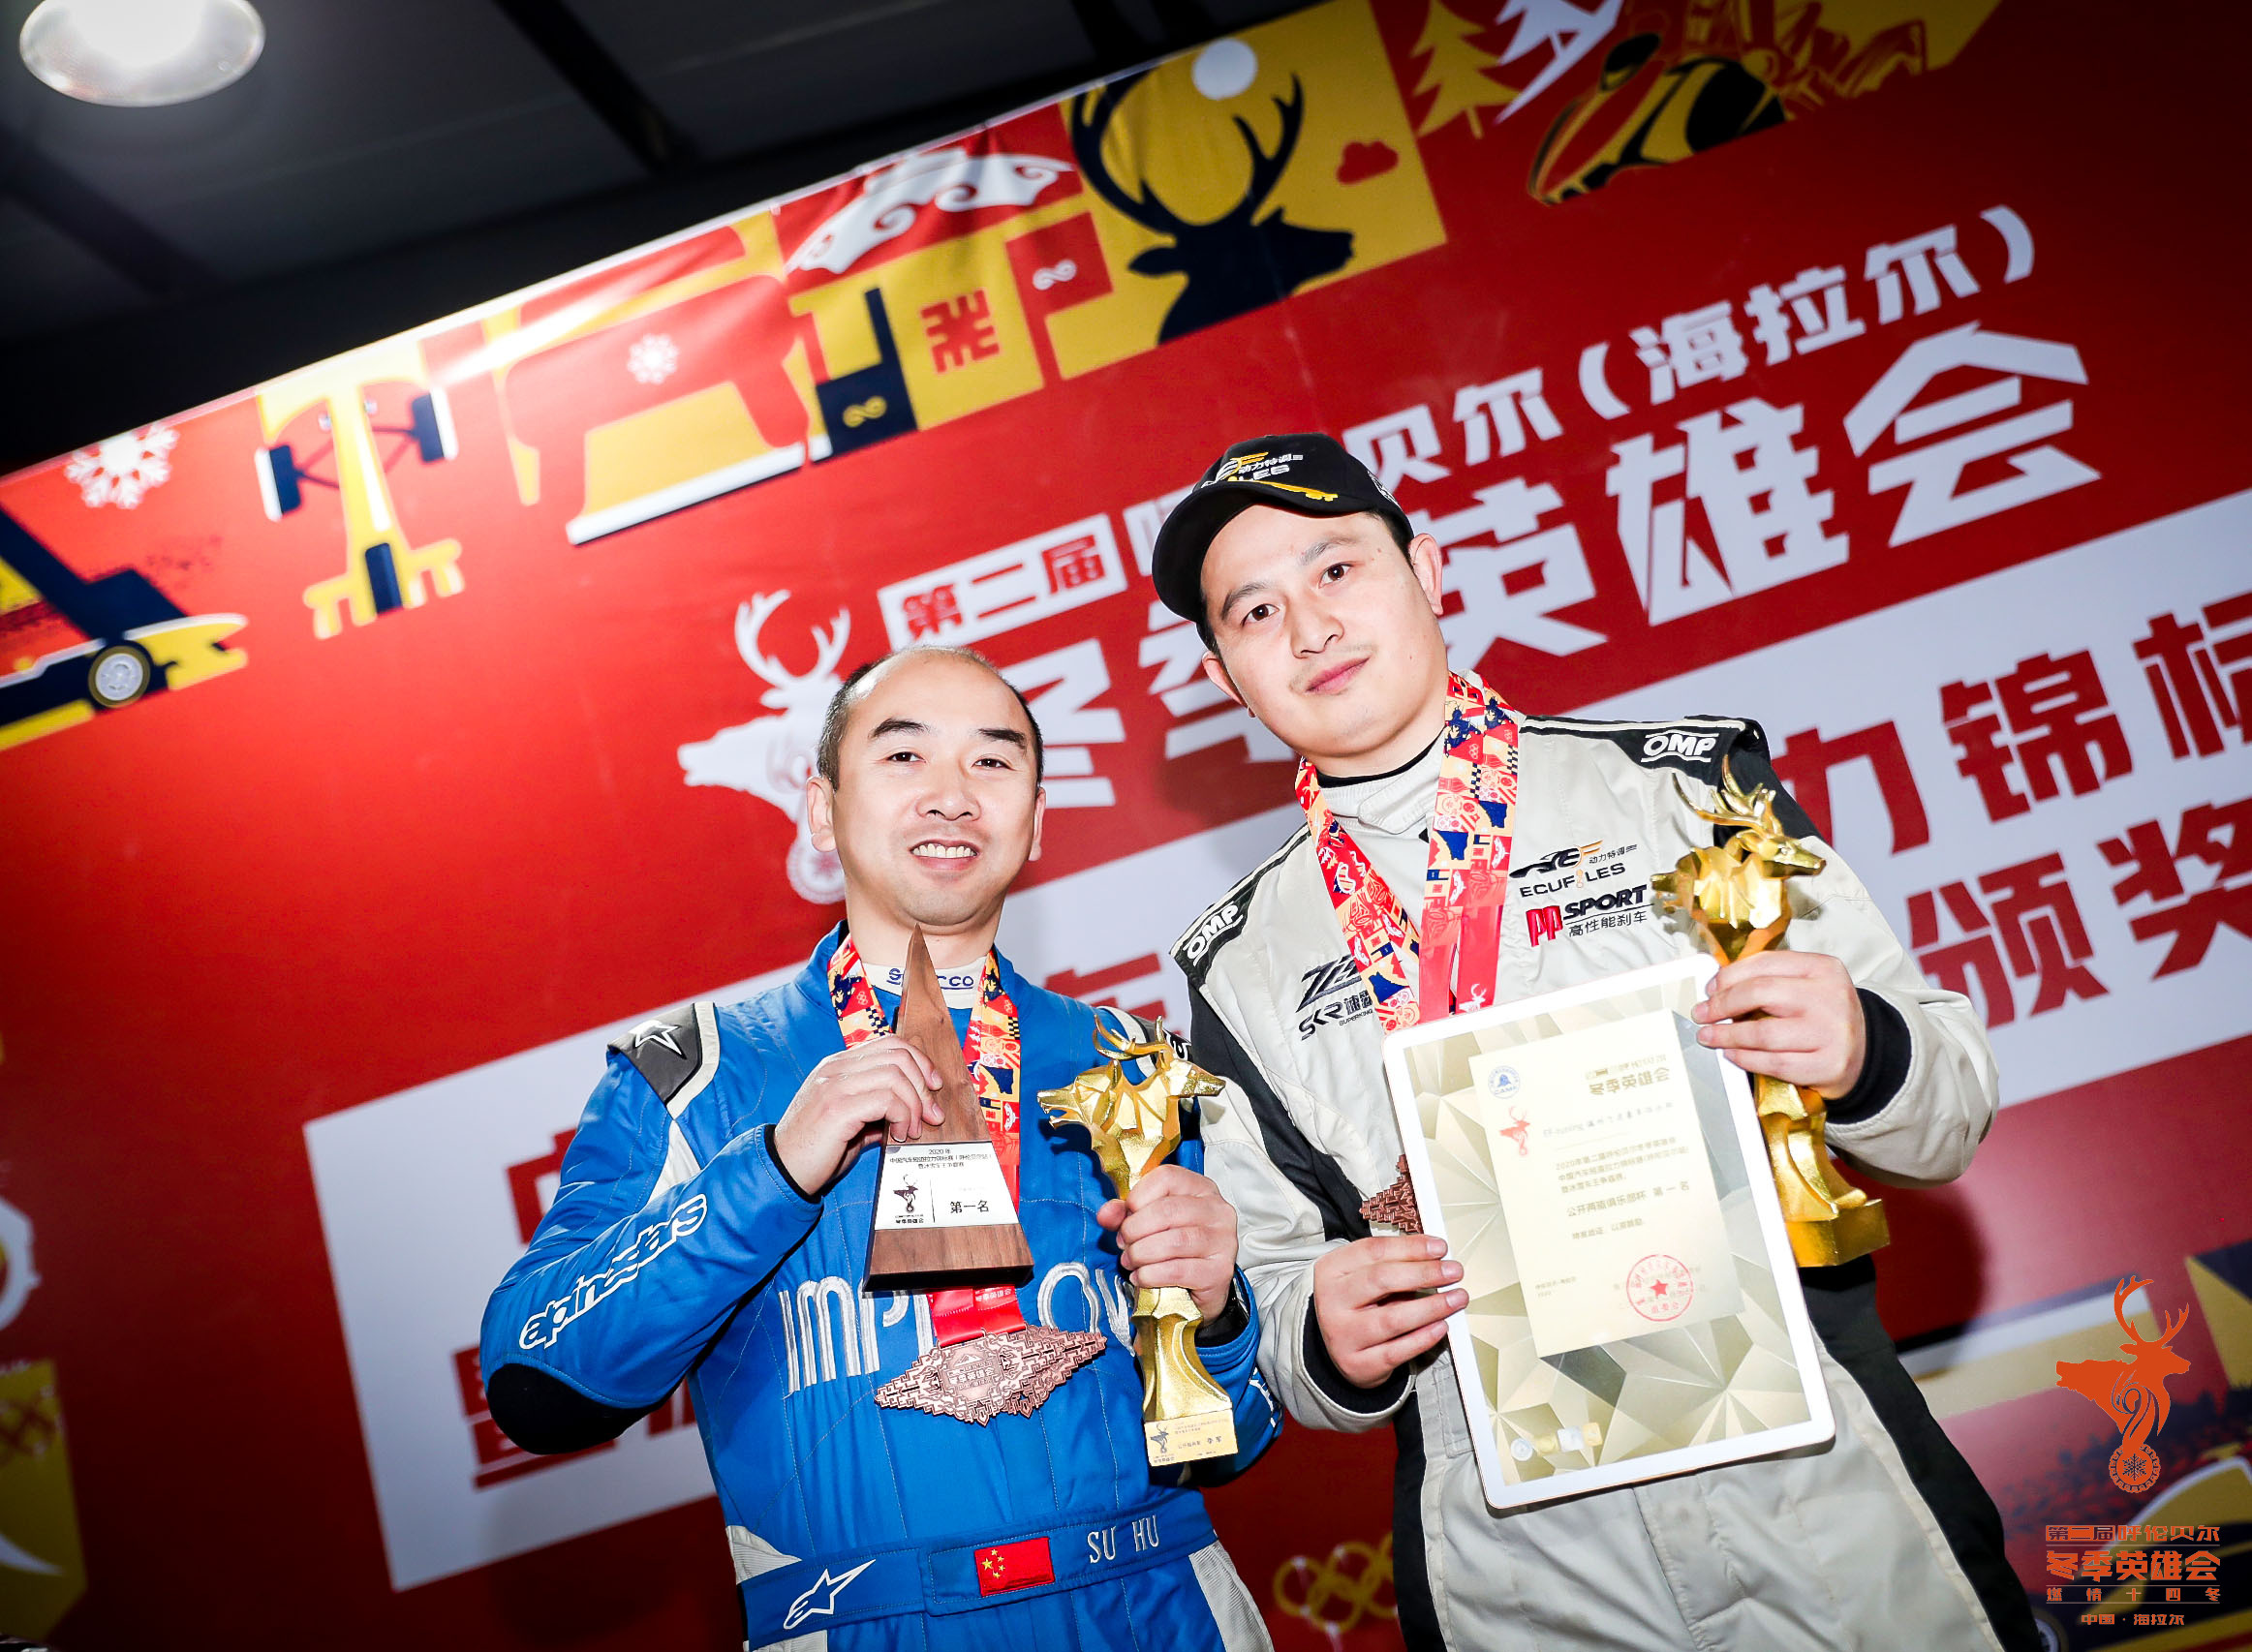 Credit Parts & EF-Tunning team wins group championship at China Auto Short Track Rally Championship